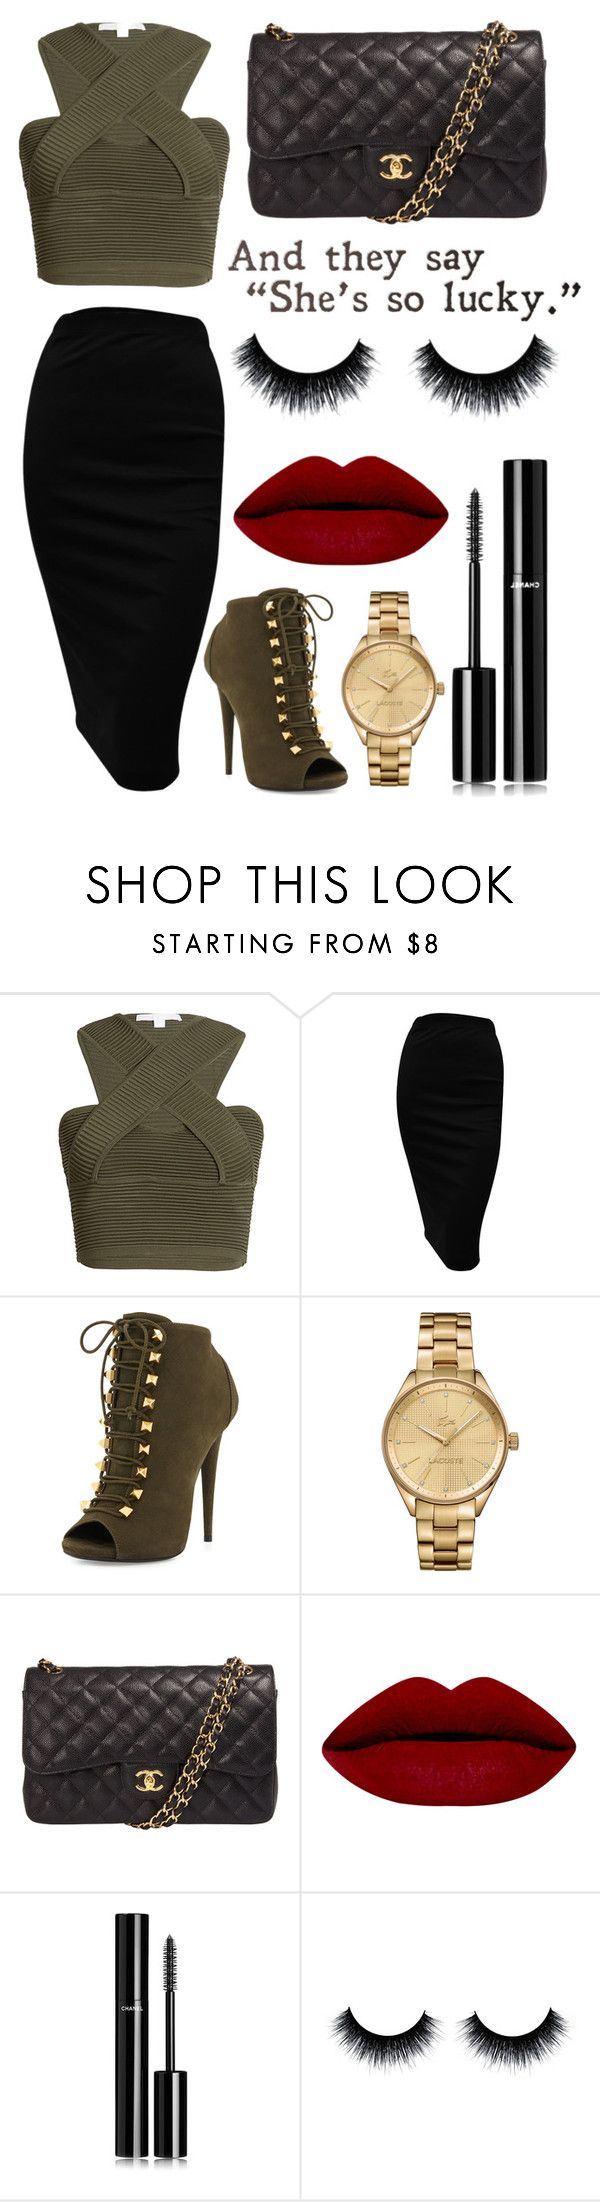 """Untitled #91"" by rodoulla97 on Polyvore featuring Jonathan Simkhai, Giuseppe Zanotti, Lacoste, Chanel, women's clothing, women's fashion, women, female, woman and misses"